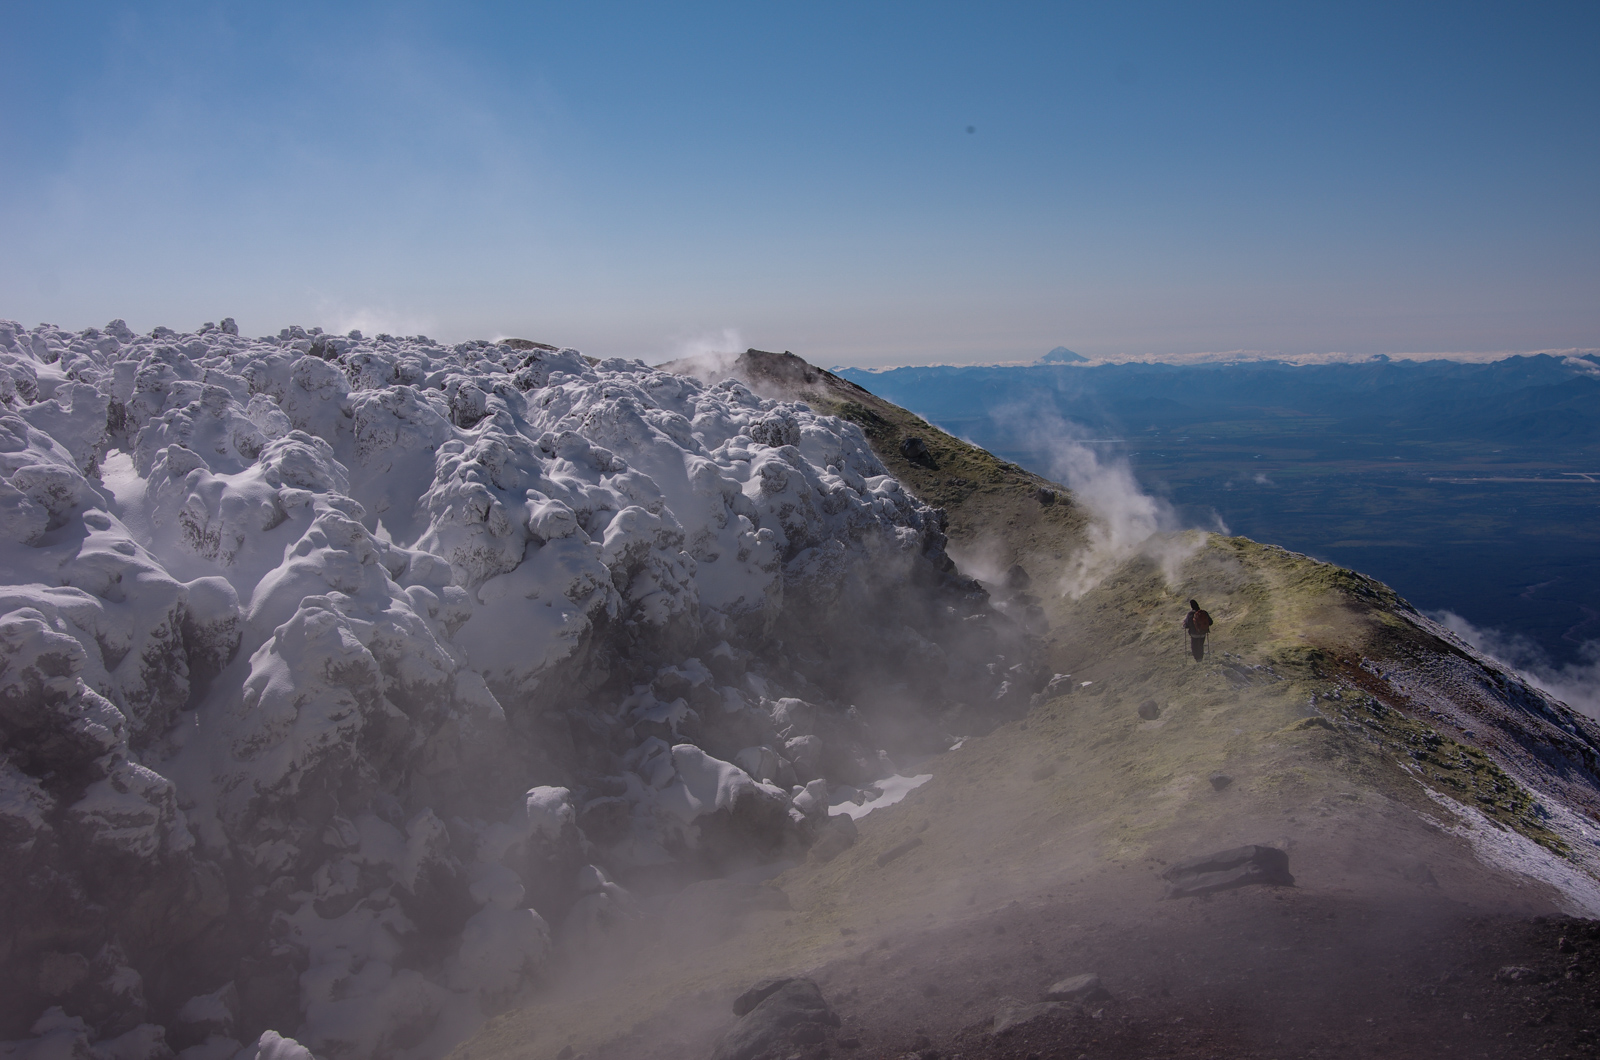 Summit of the Avacha volcano, Kamchatka, Far East Russia.